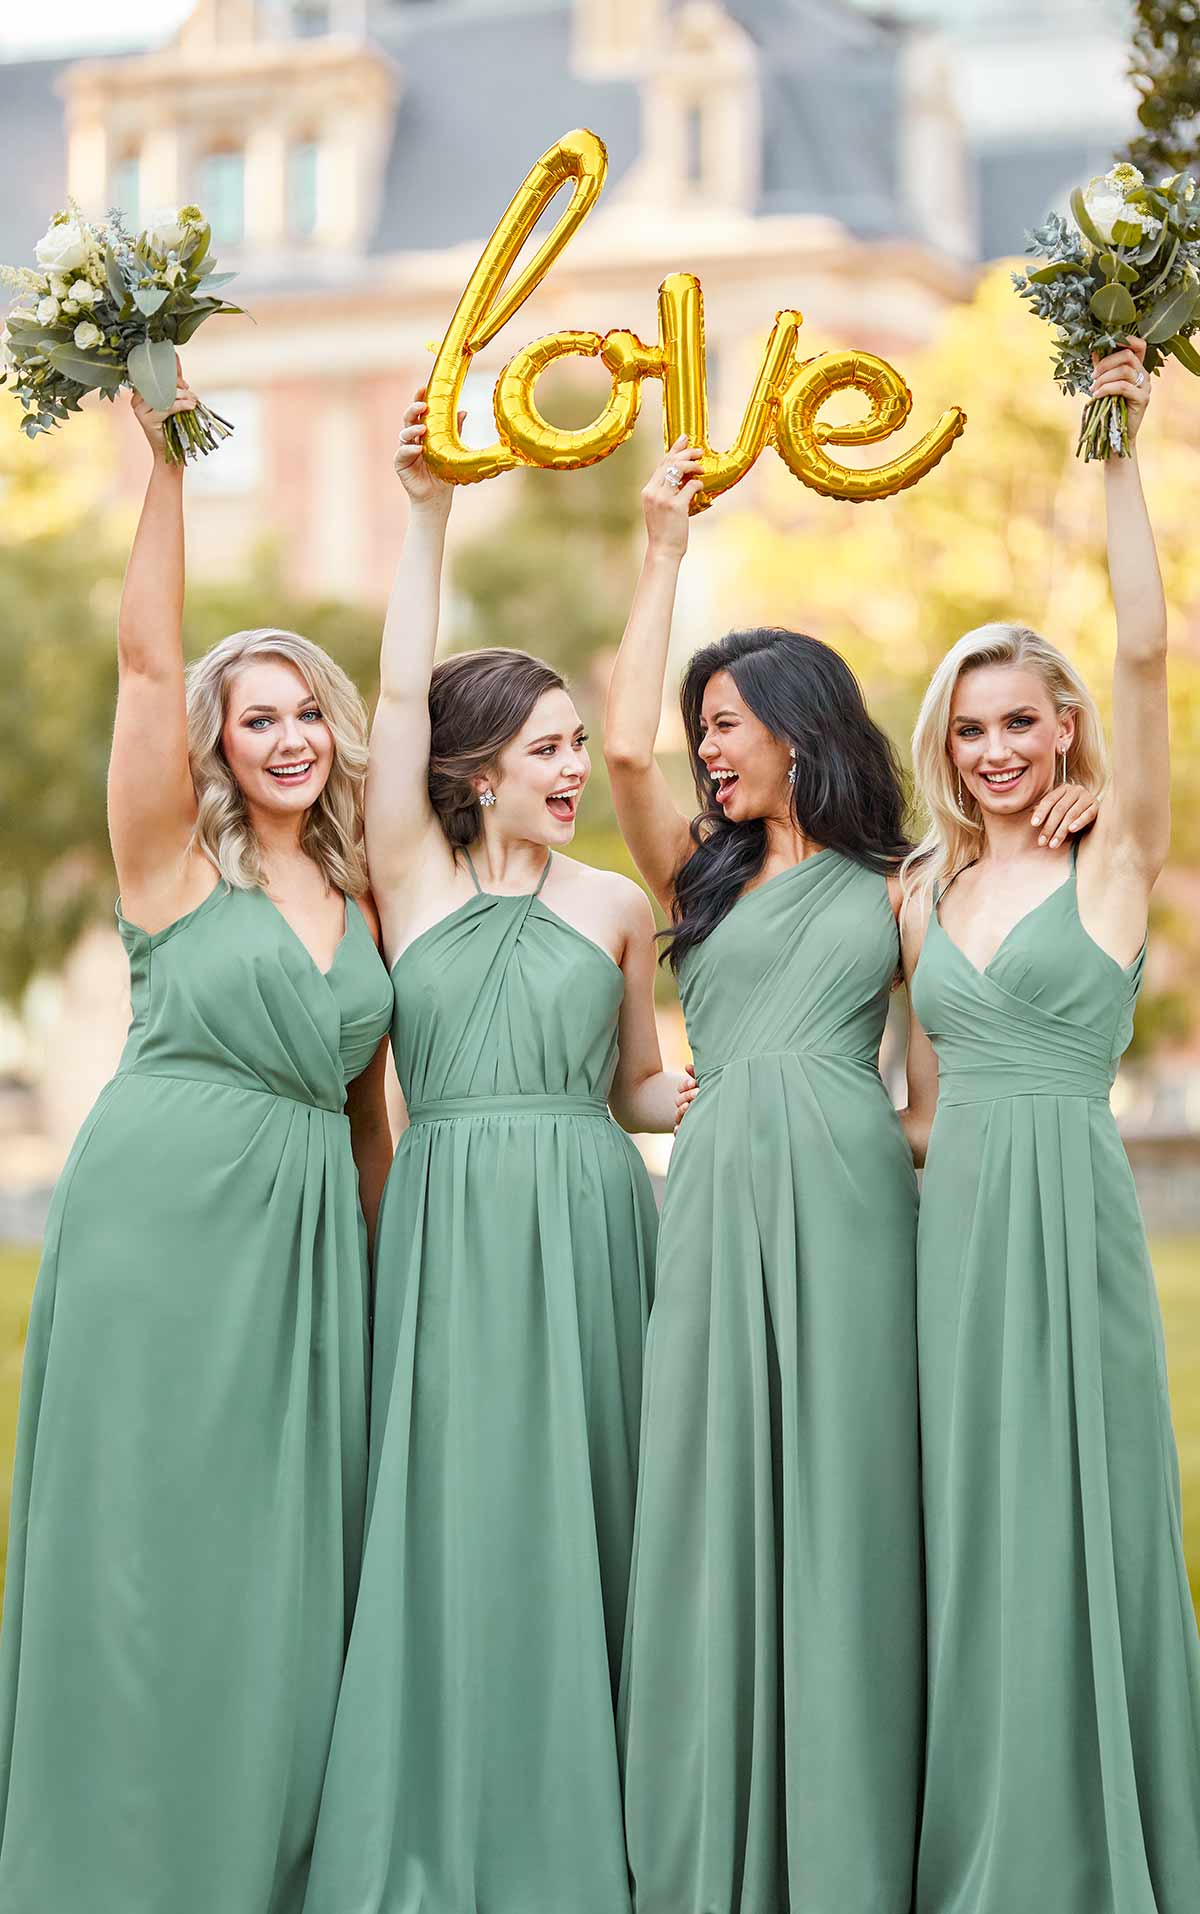 Models wearing green bridesmaid dresses in different styles